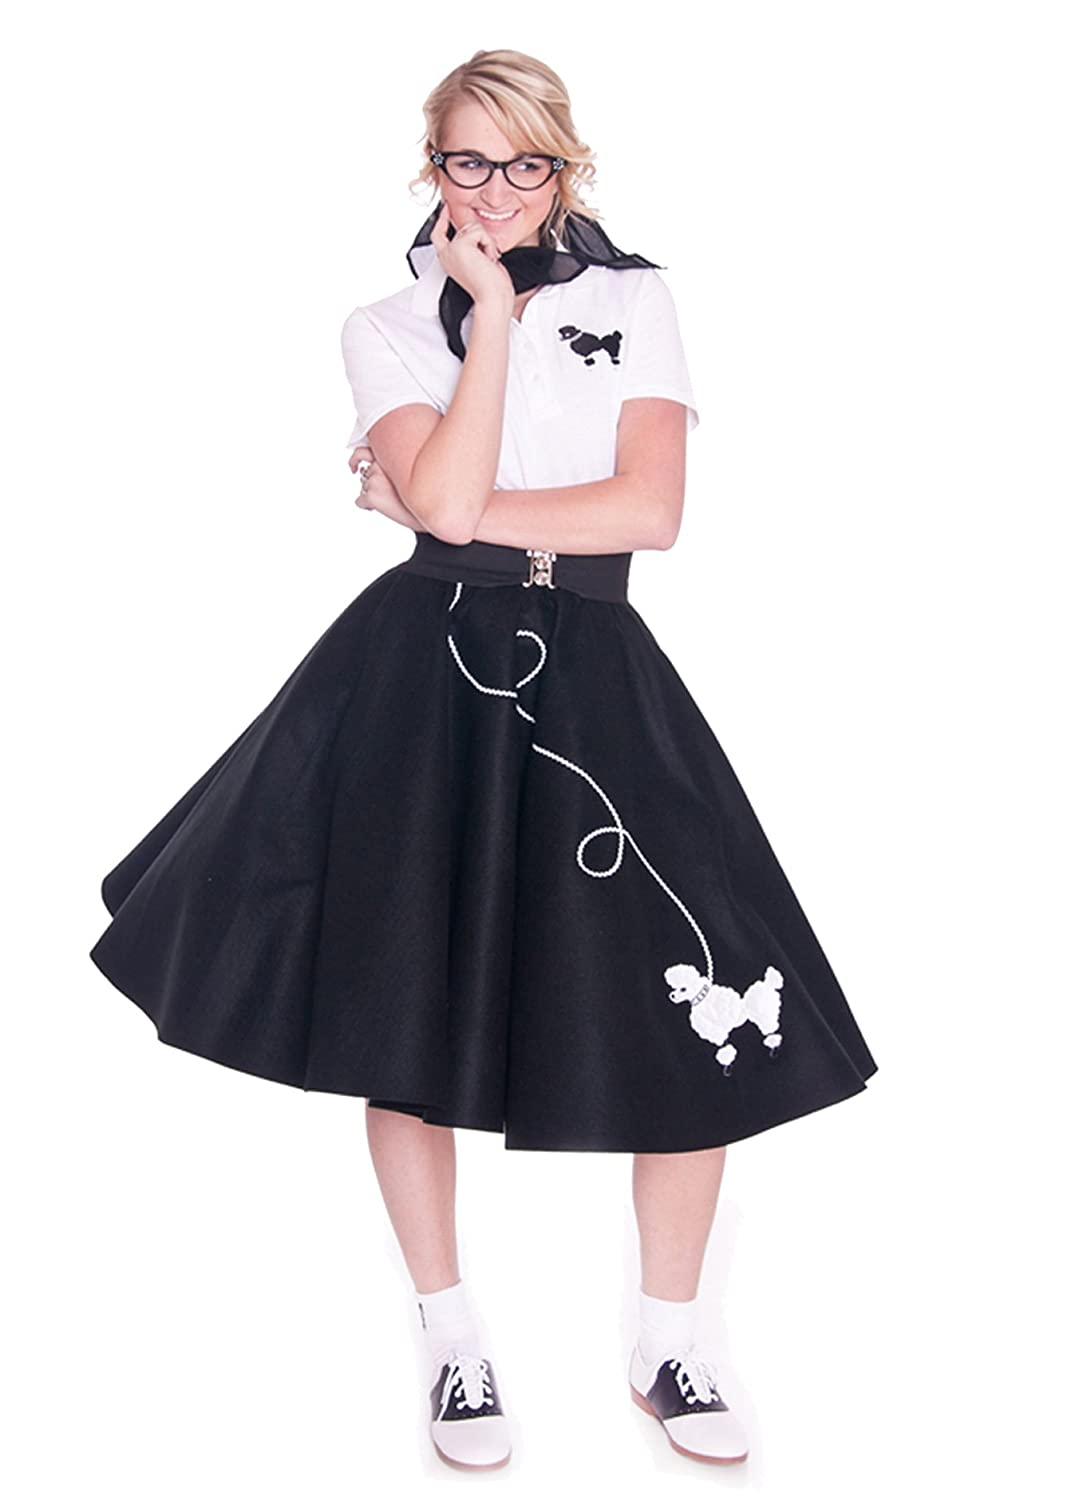 1950s Costumes- Poodle Skirts, Grease, Monroe, Pin Up, I Love Lucy Hip Hop 50s Shop Adult Poodle Skirt $44.84 AT vintagedancer.com